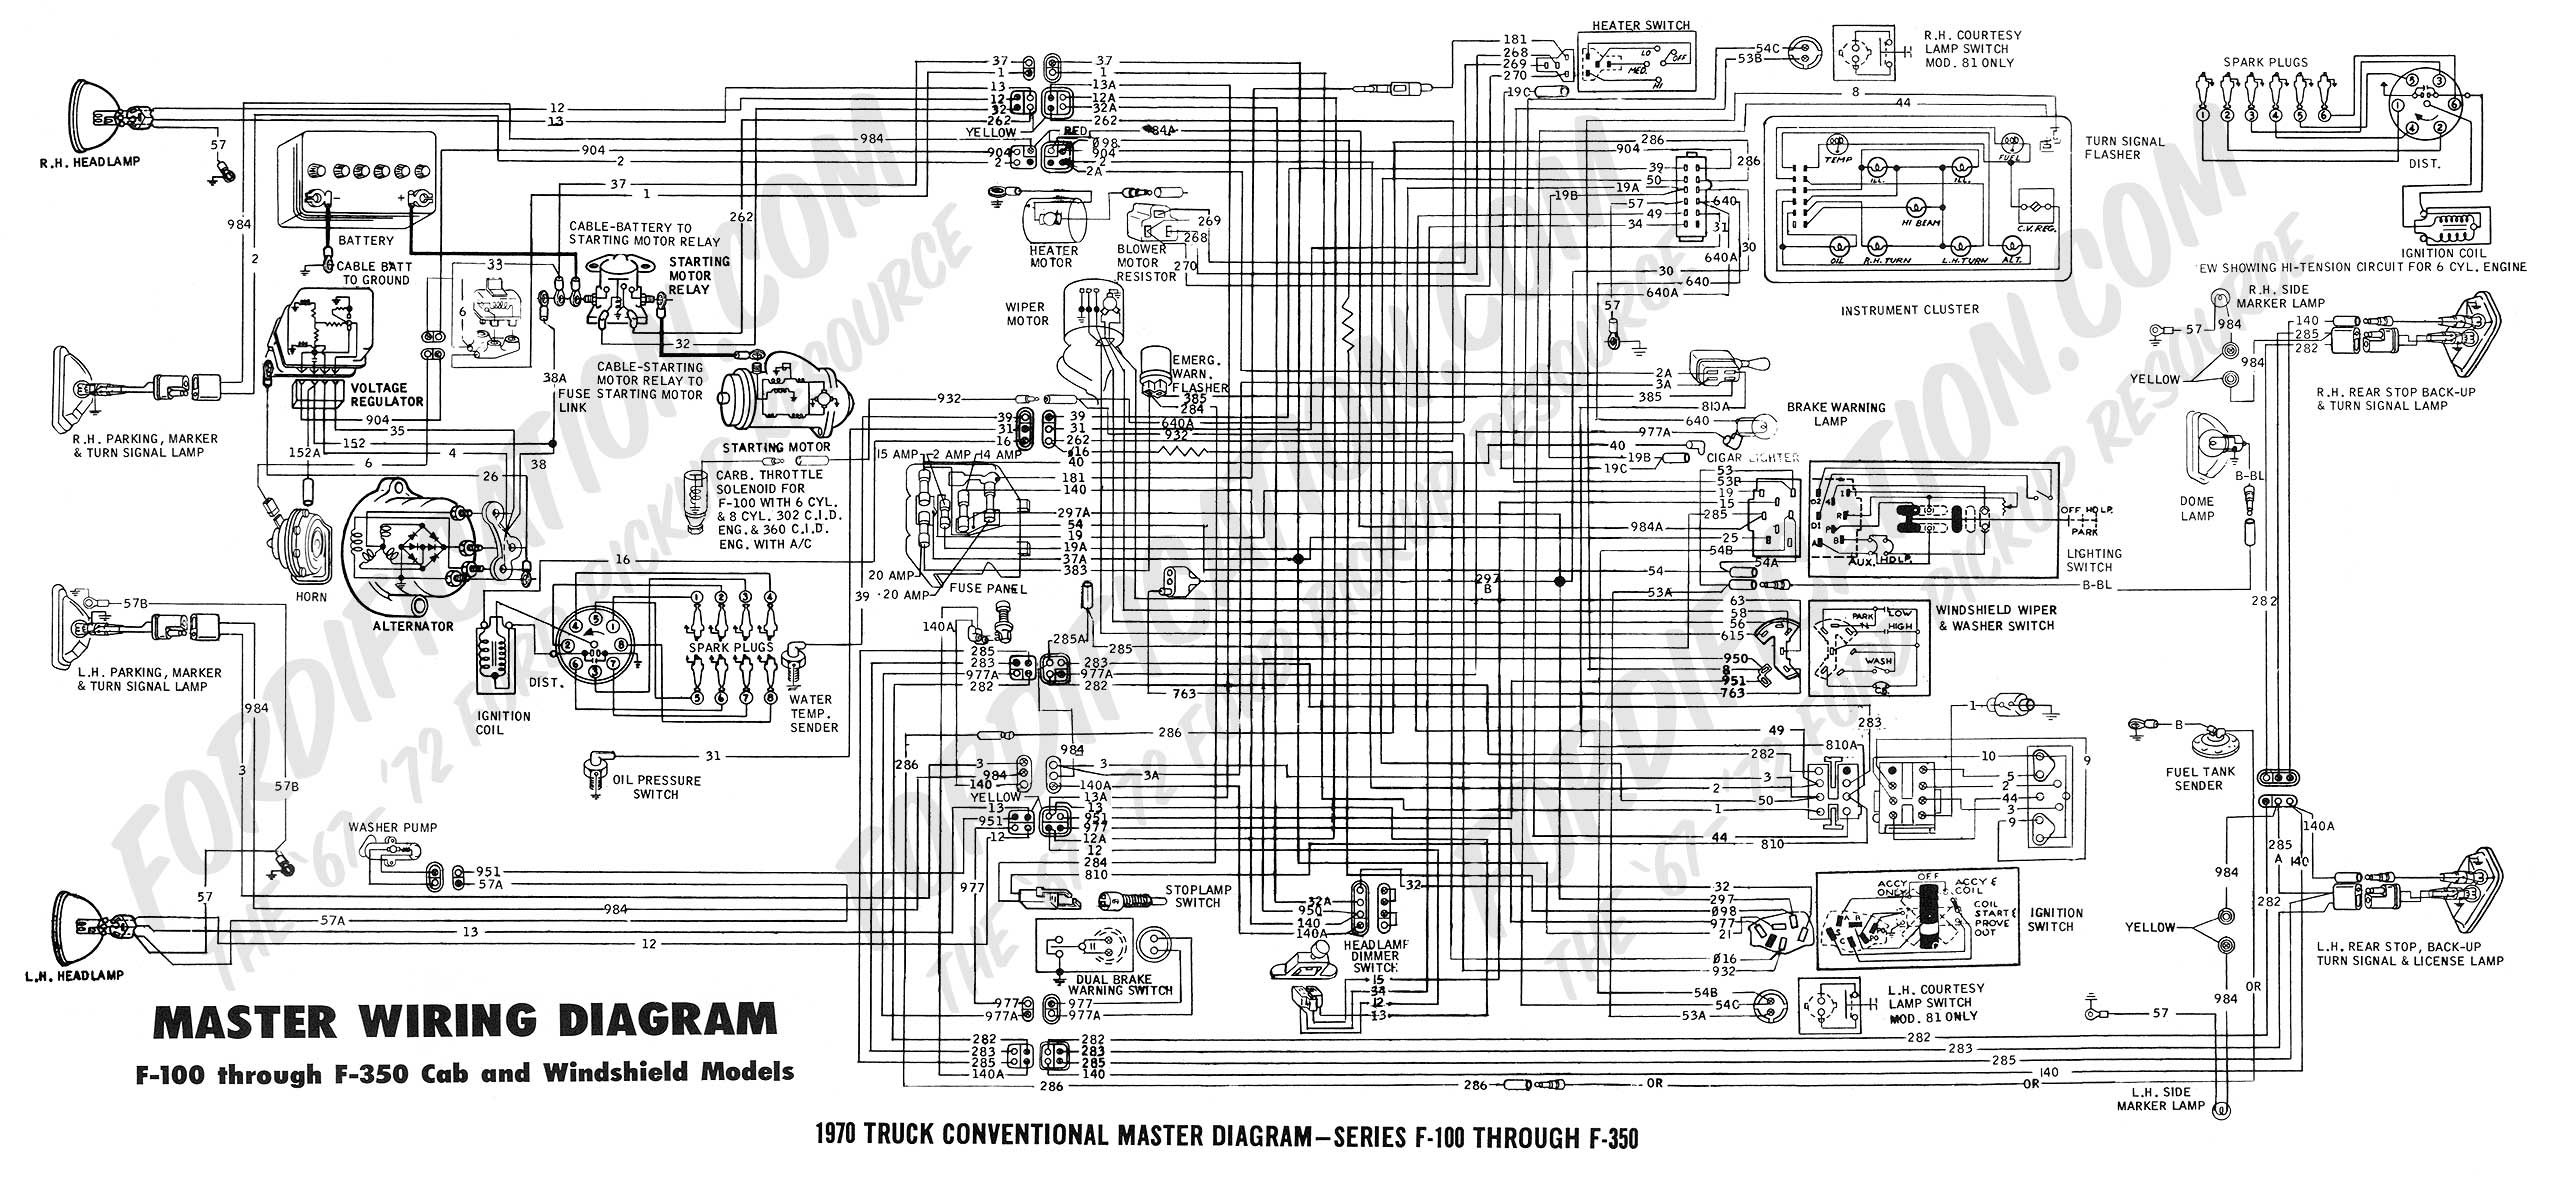 1967 Ford Truck Wiring Diagram Schematics 1962 Chevy C10 Steering Column Data Schema 1965 Alternator